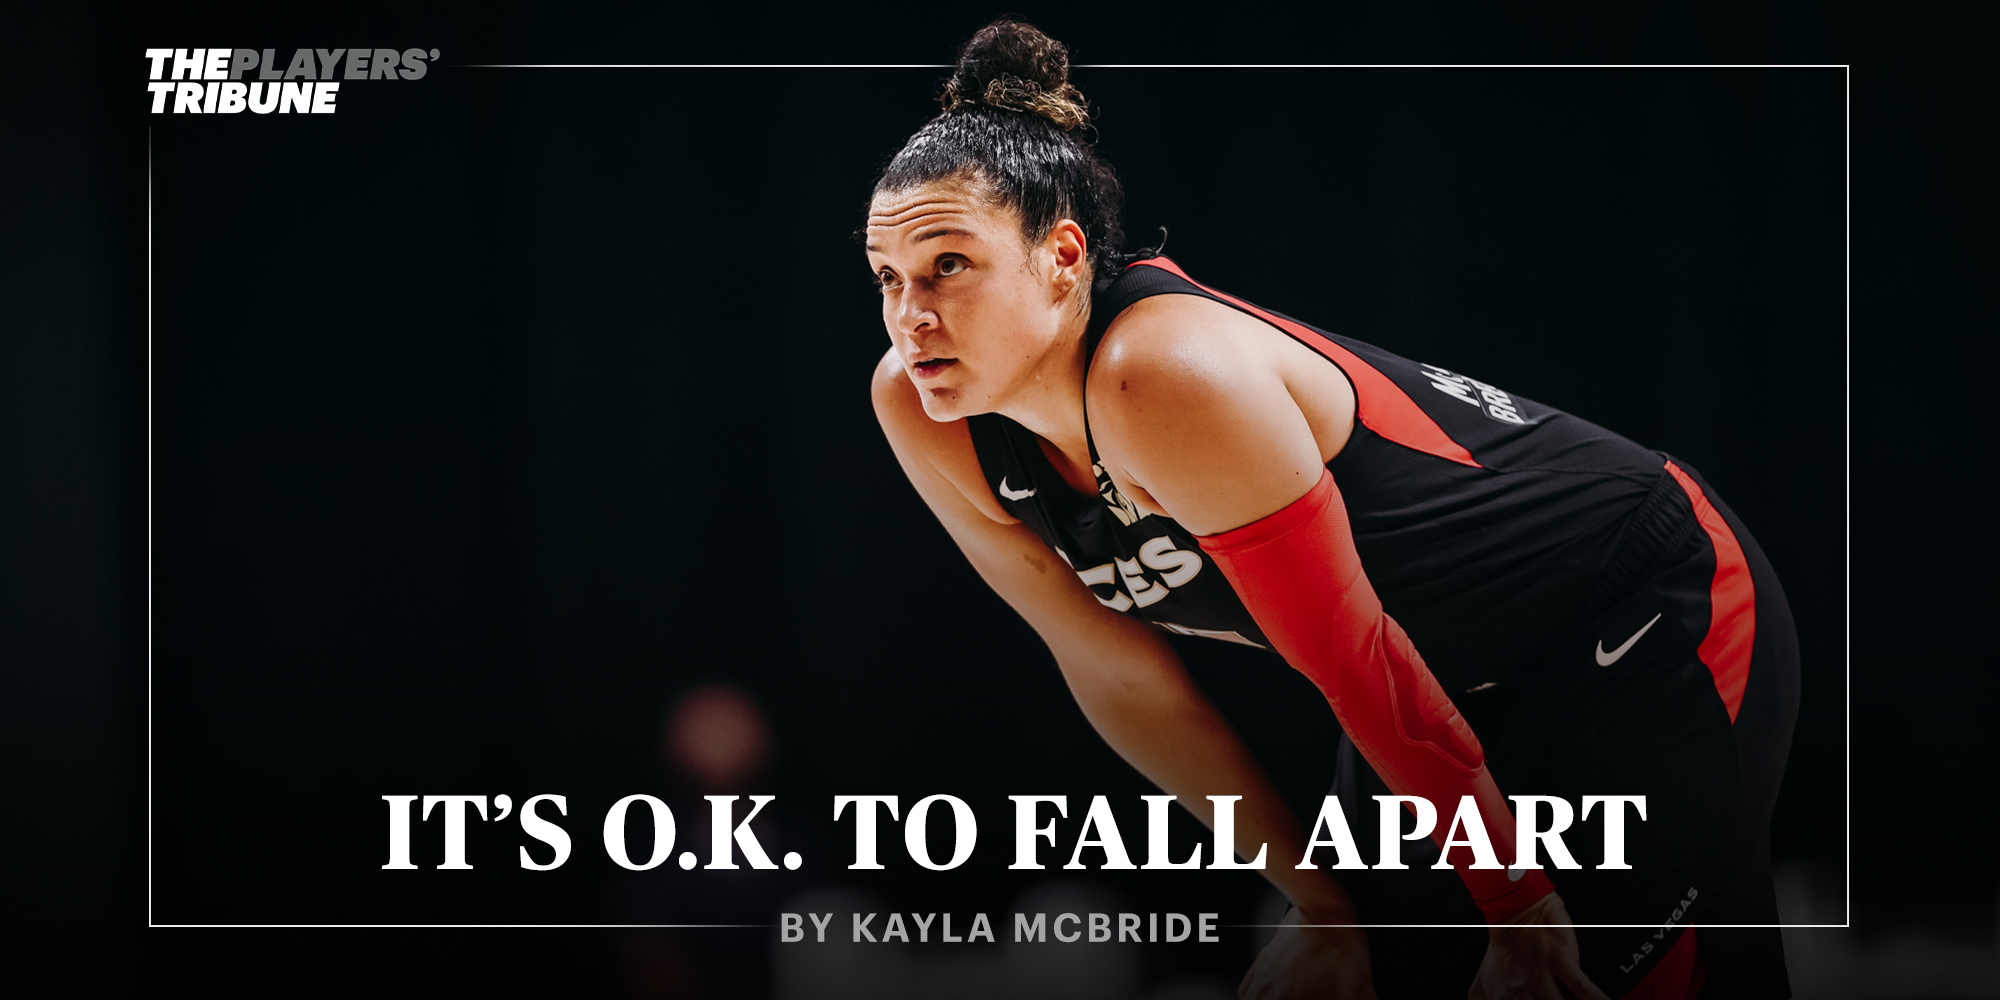 It's O.K. to Fall Apart | By Kayla McBride